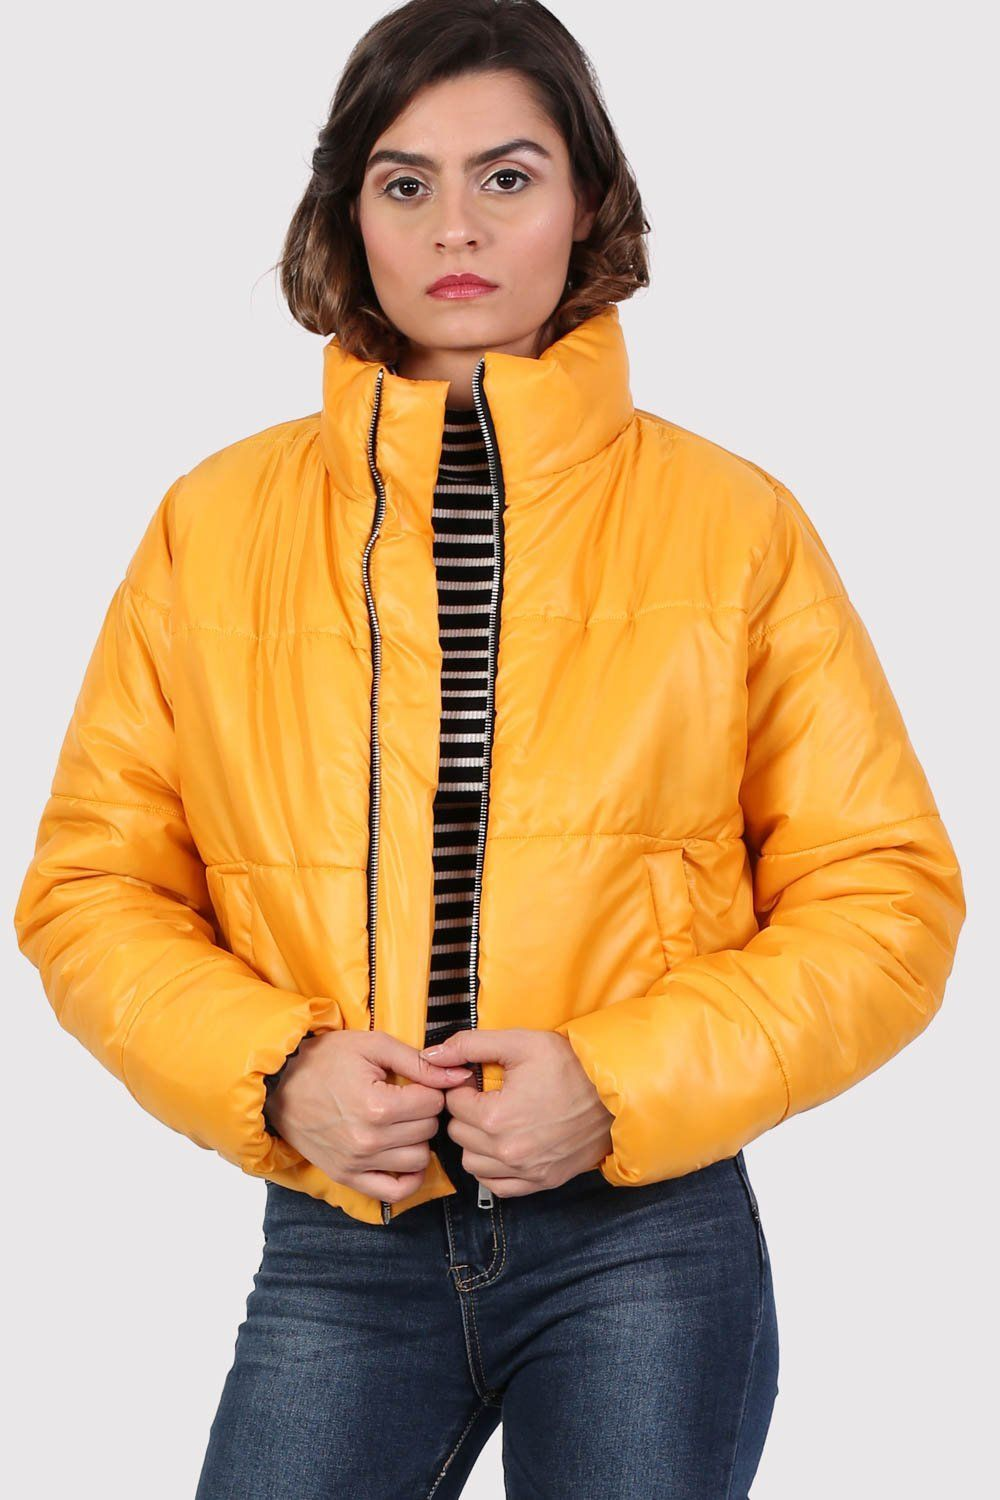 Cropped Puffer Jacket in Mustard Yellow 0